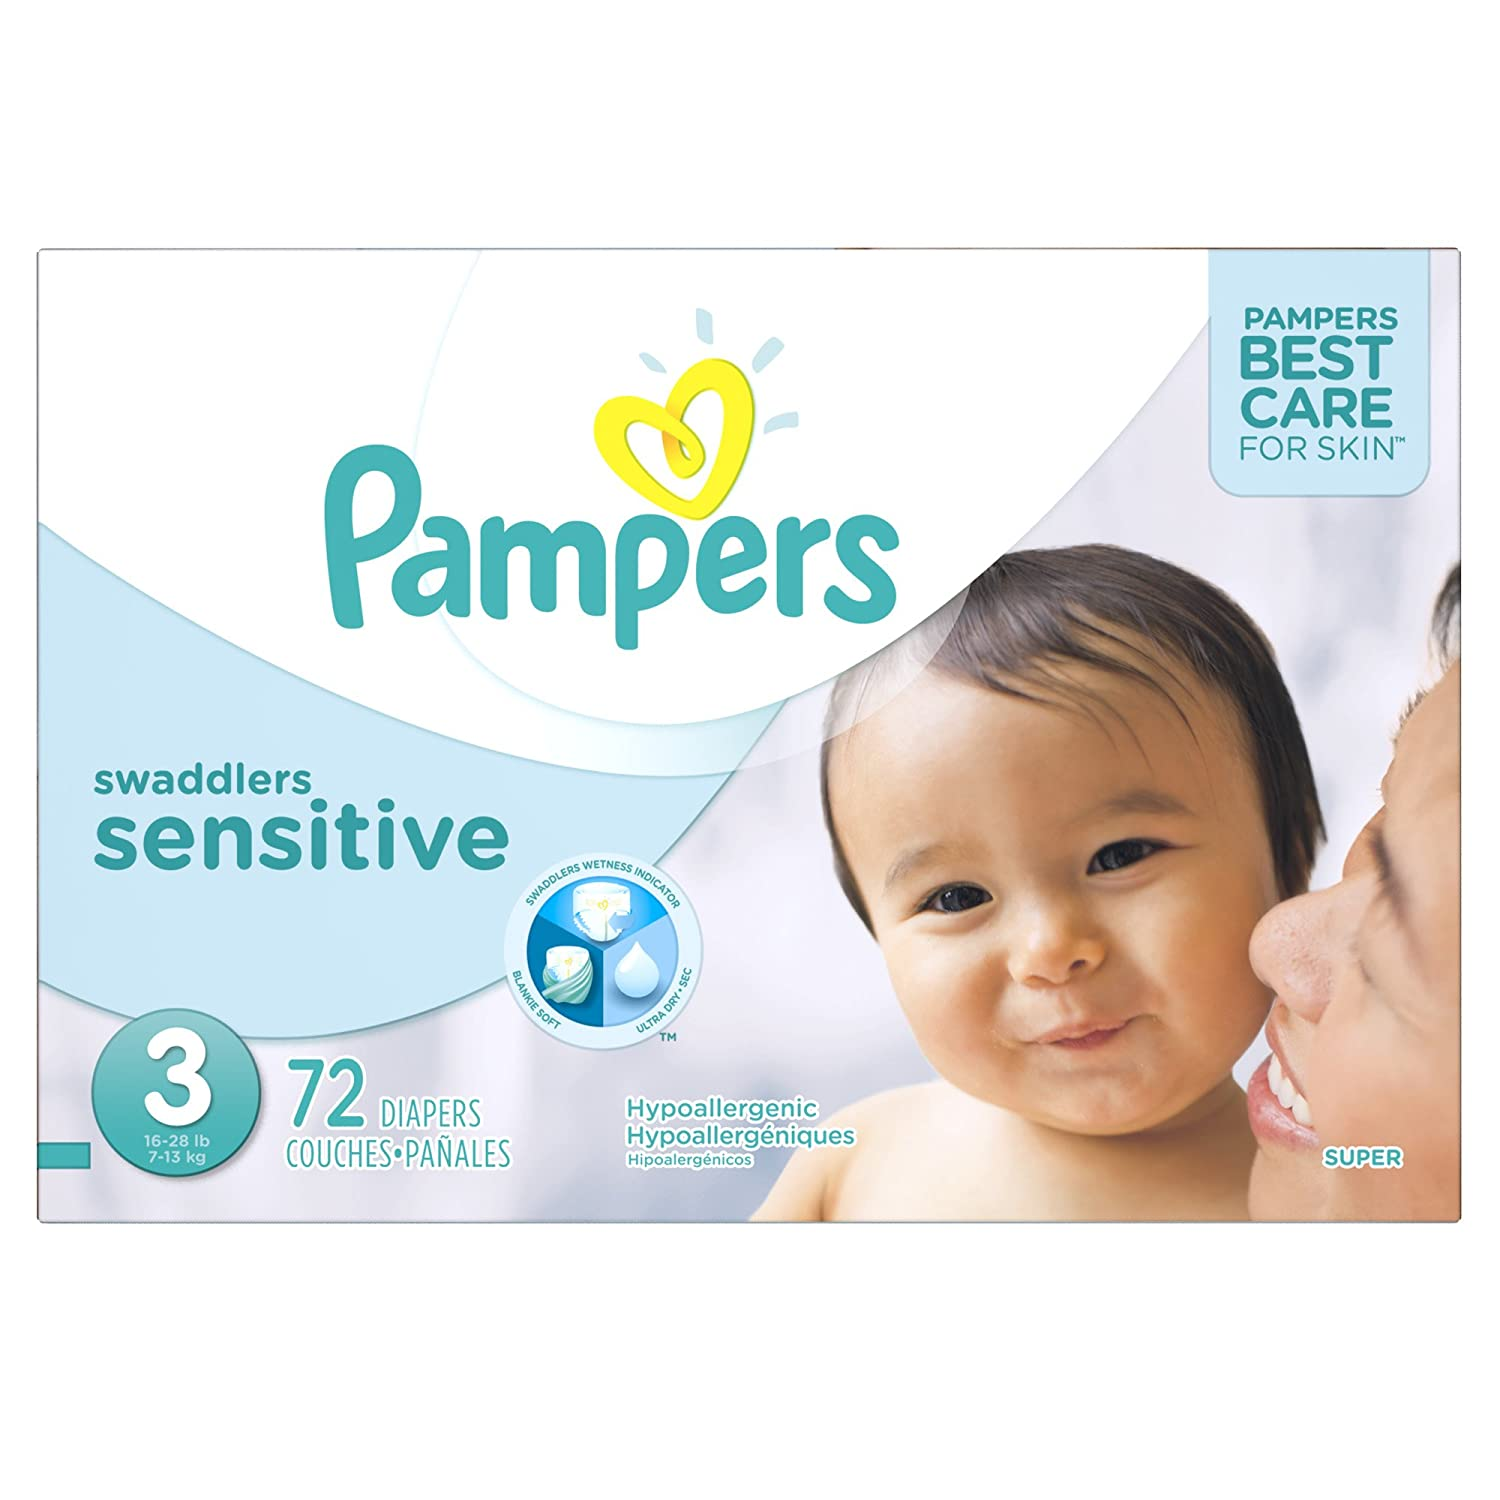 Pampers Swaddlers SENSITIVE Disposable Baby Diapers Size 3, Super Pack, 72 Count PG-5979